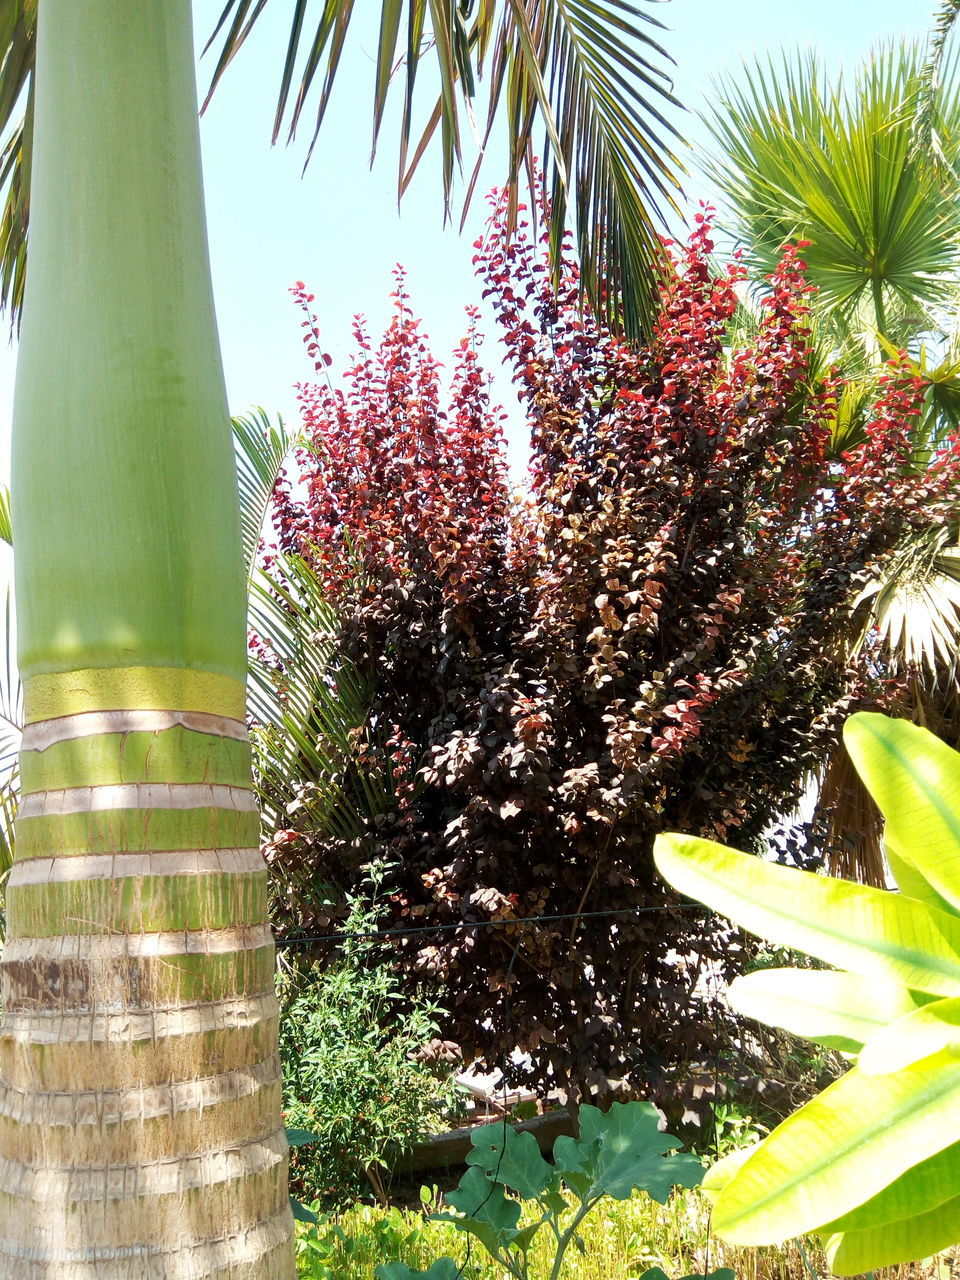 growth, tree, day, nature, outdoors, no people, tranquility, plant, sunlight, beauty in nature, flower, palm tree, freshness, fragility, close-up, sky